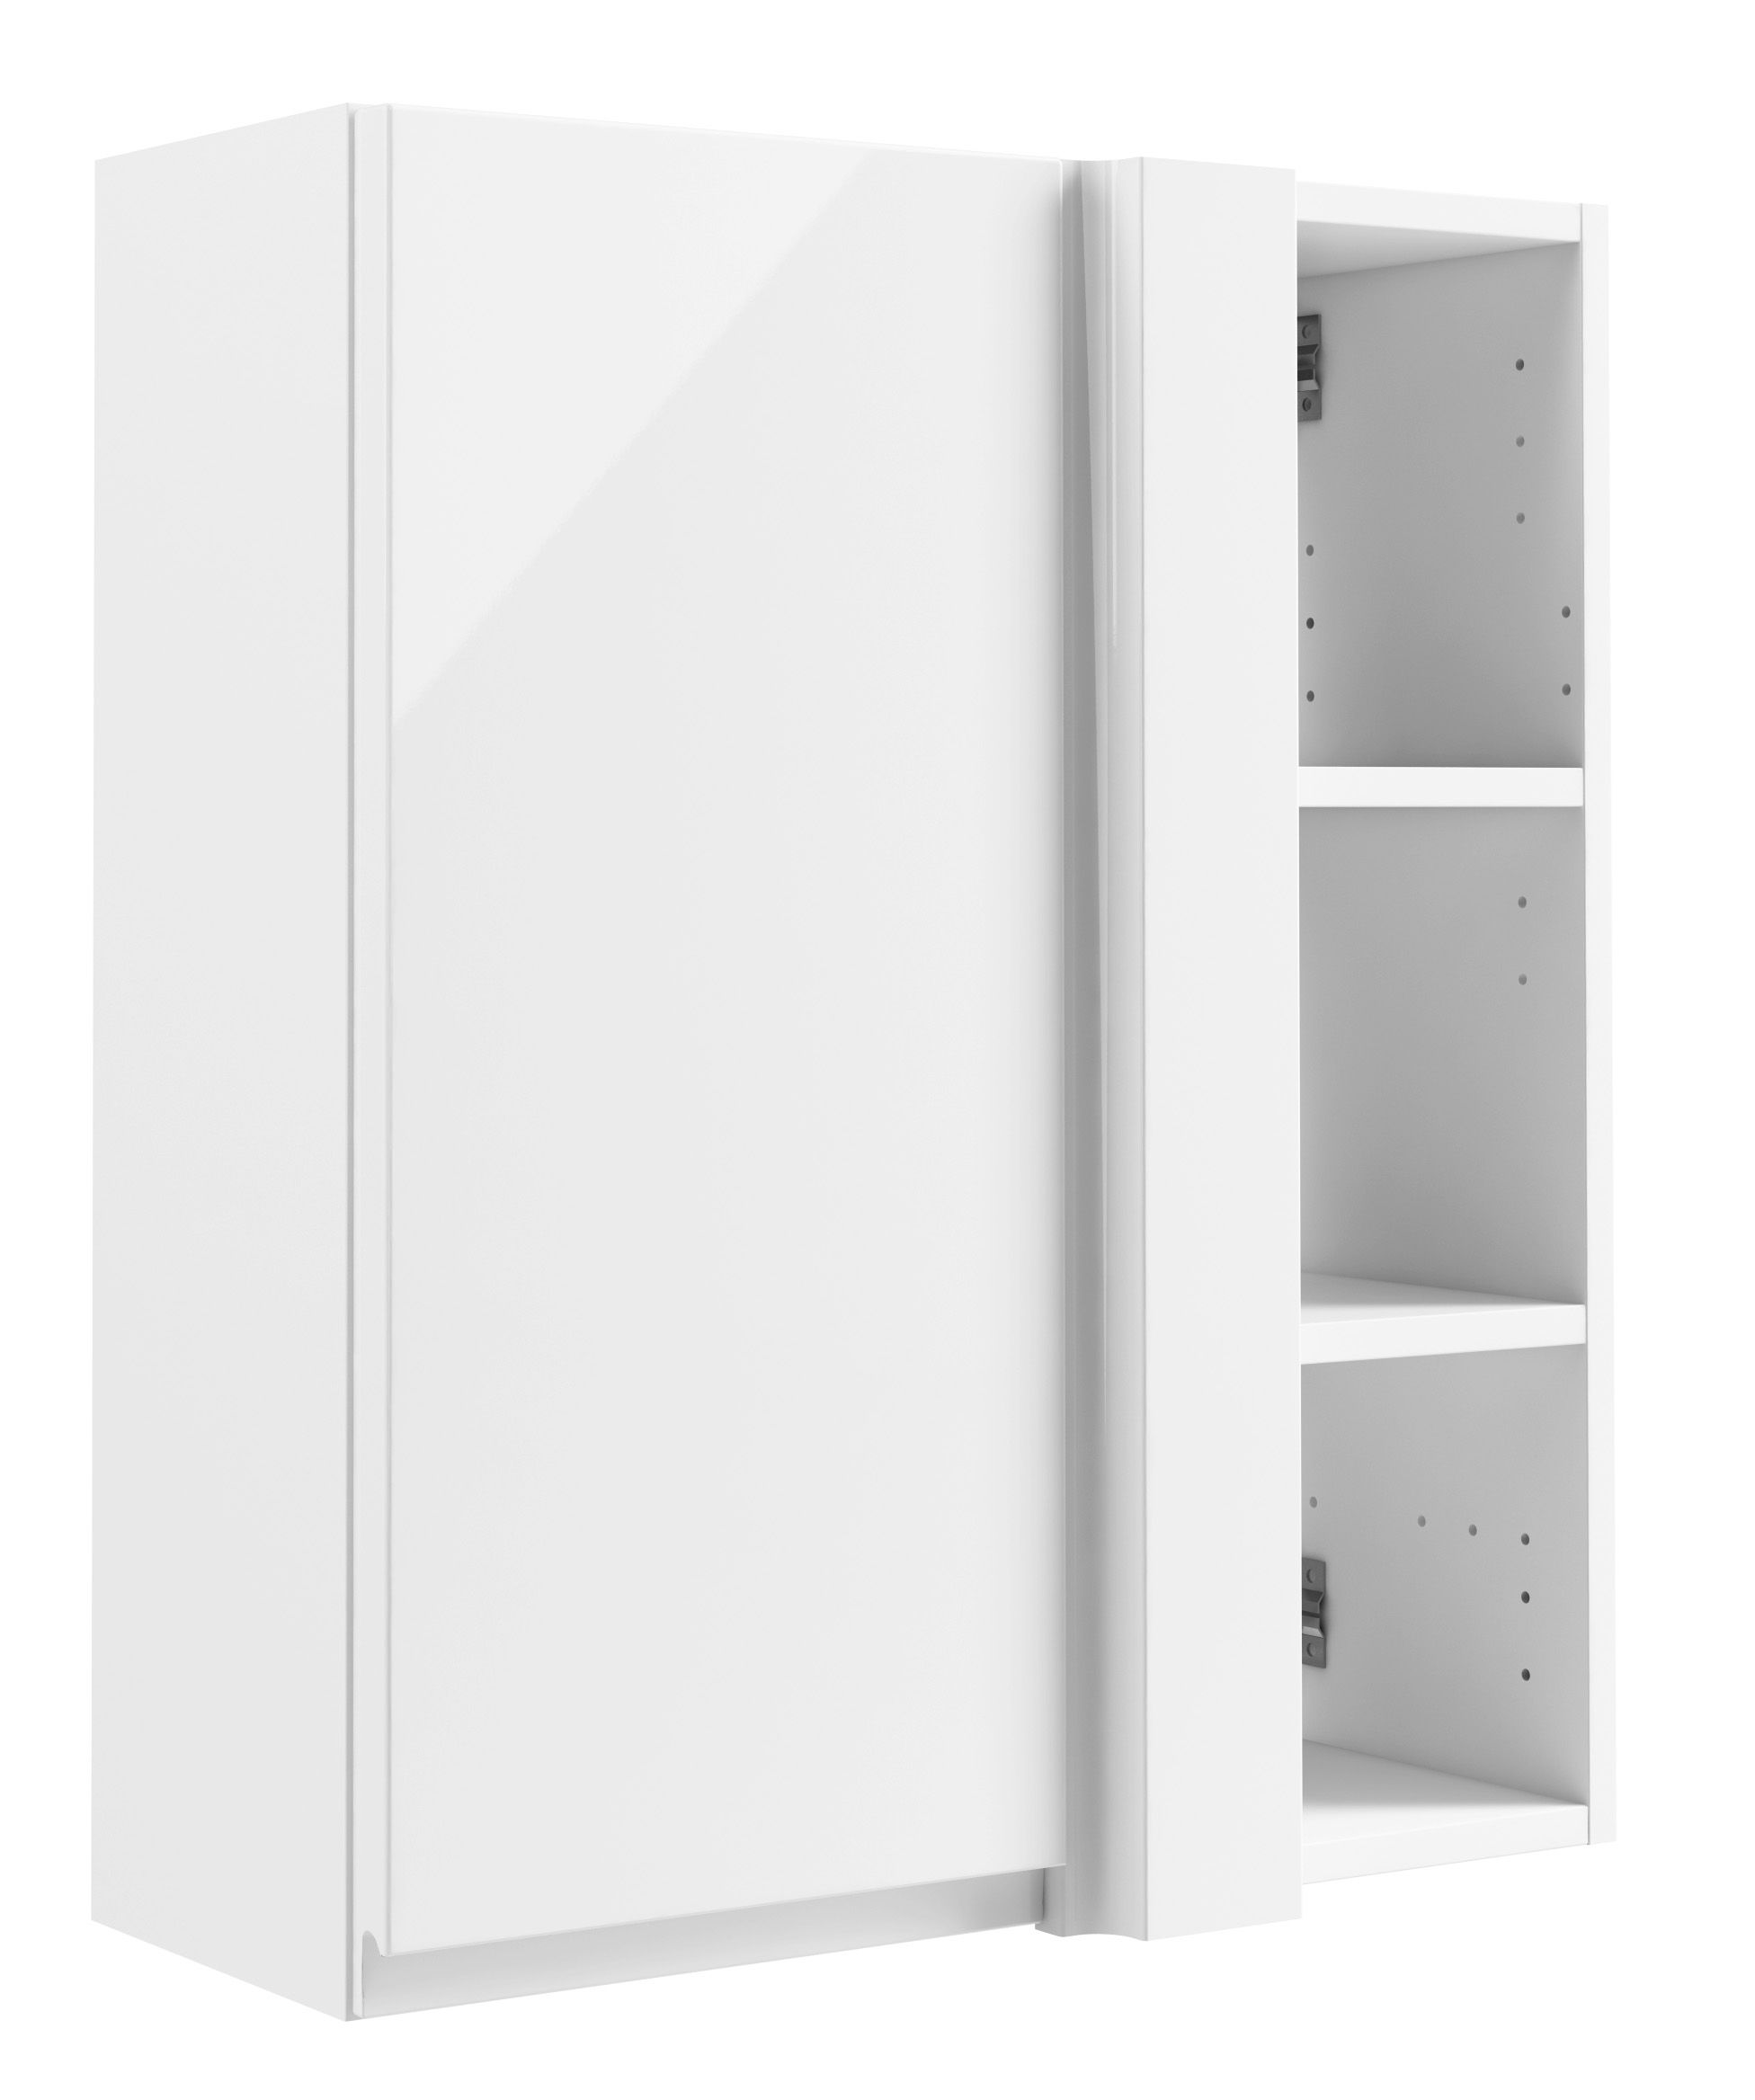 Cooke and lewis bathroom wall cabinets mf cabinets for B q bathroom mirrors